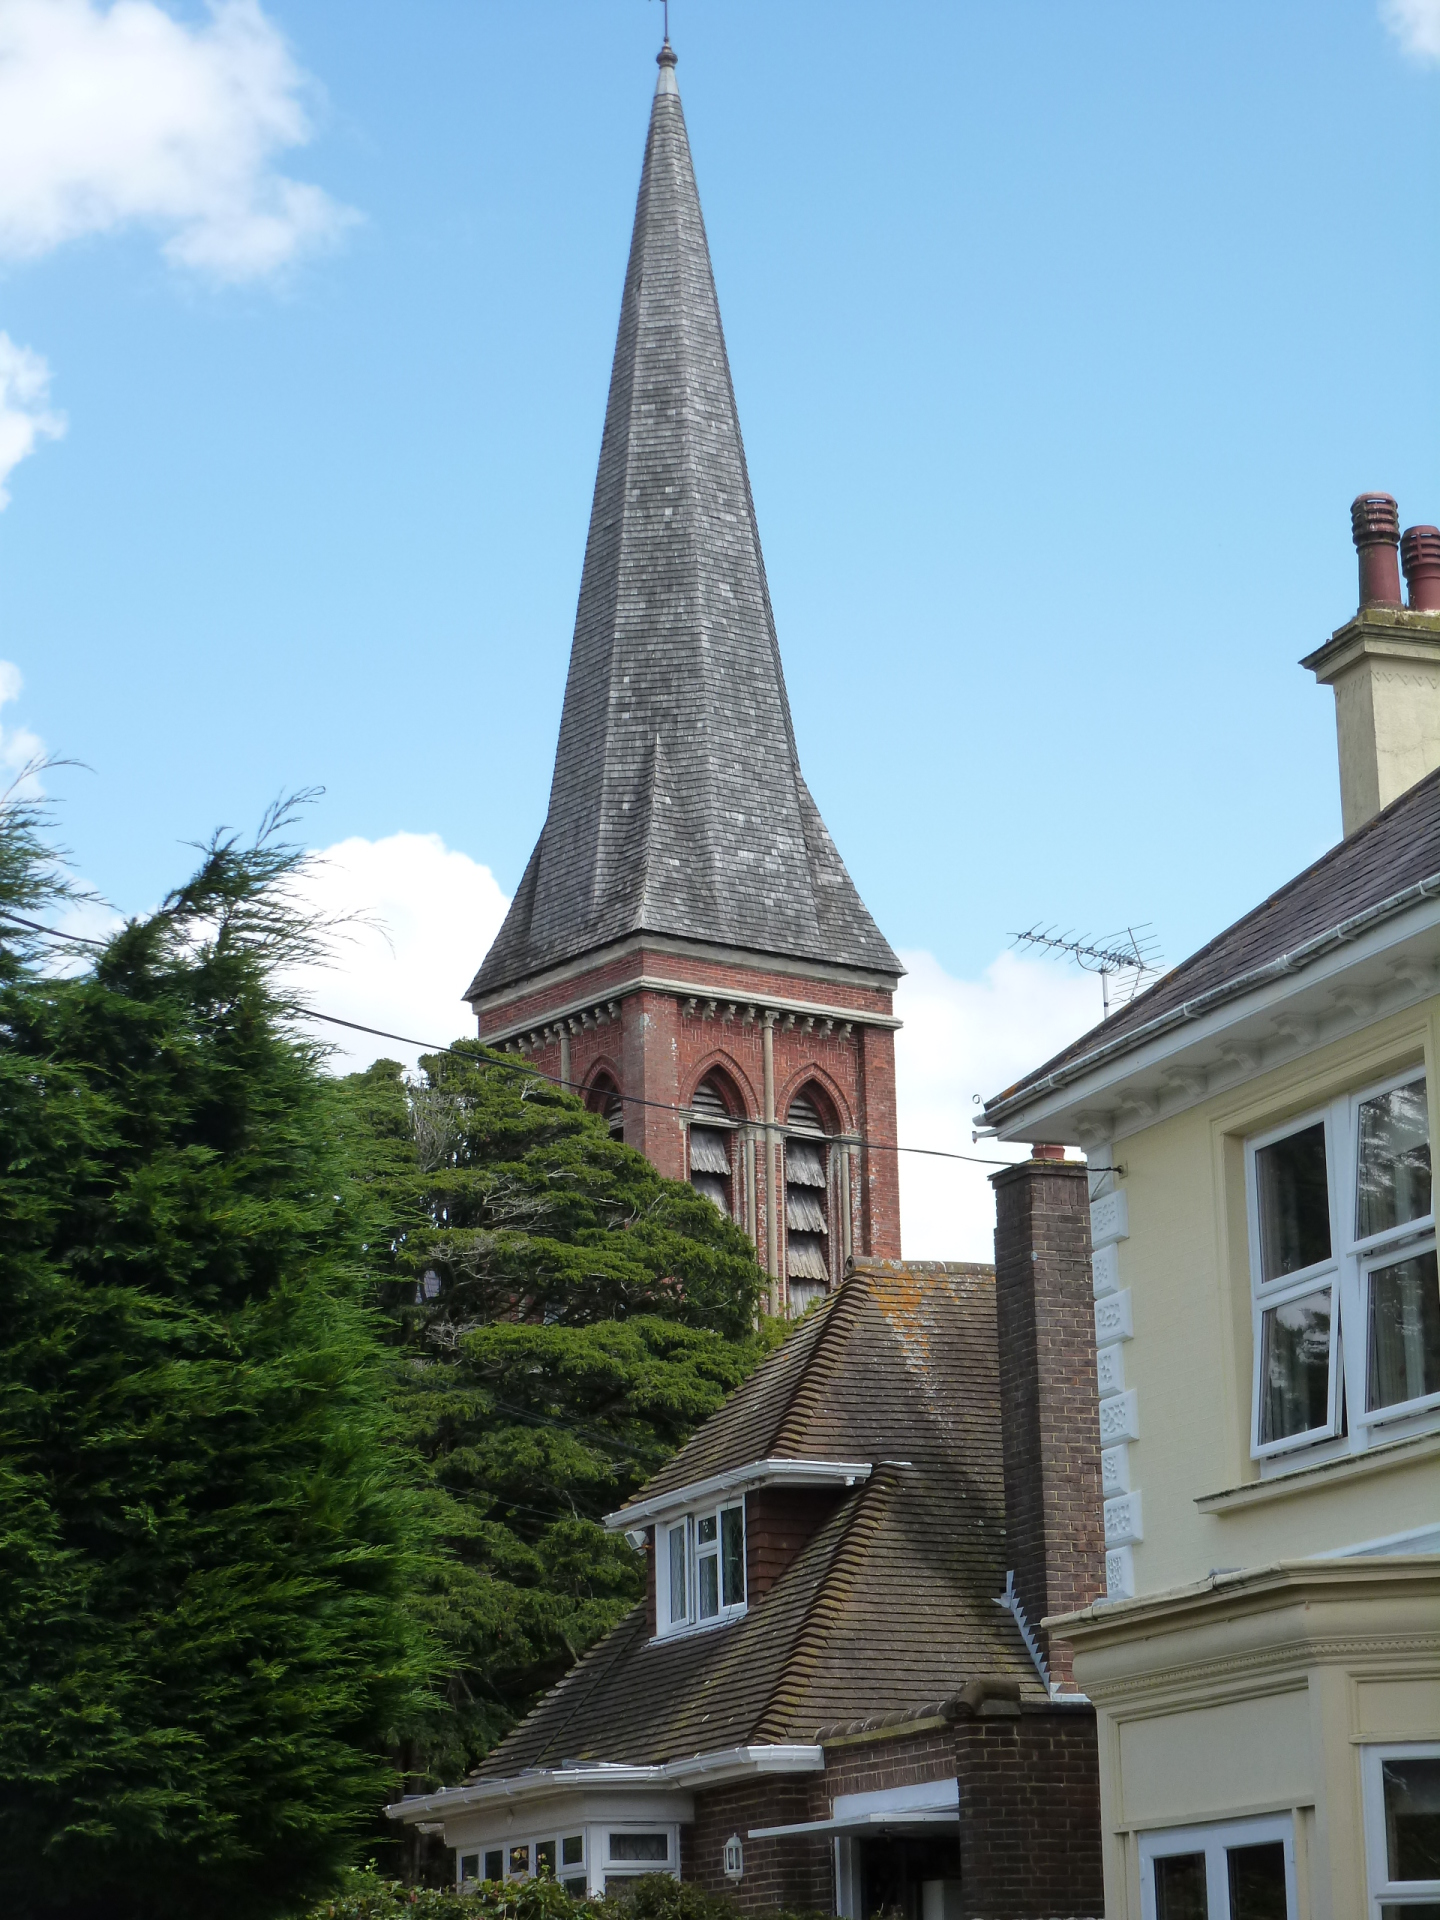 View of newly re-tiled spire